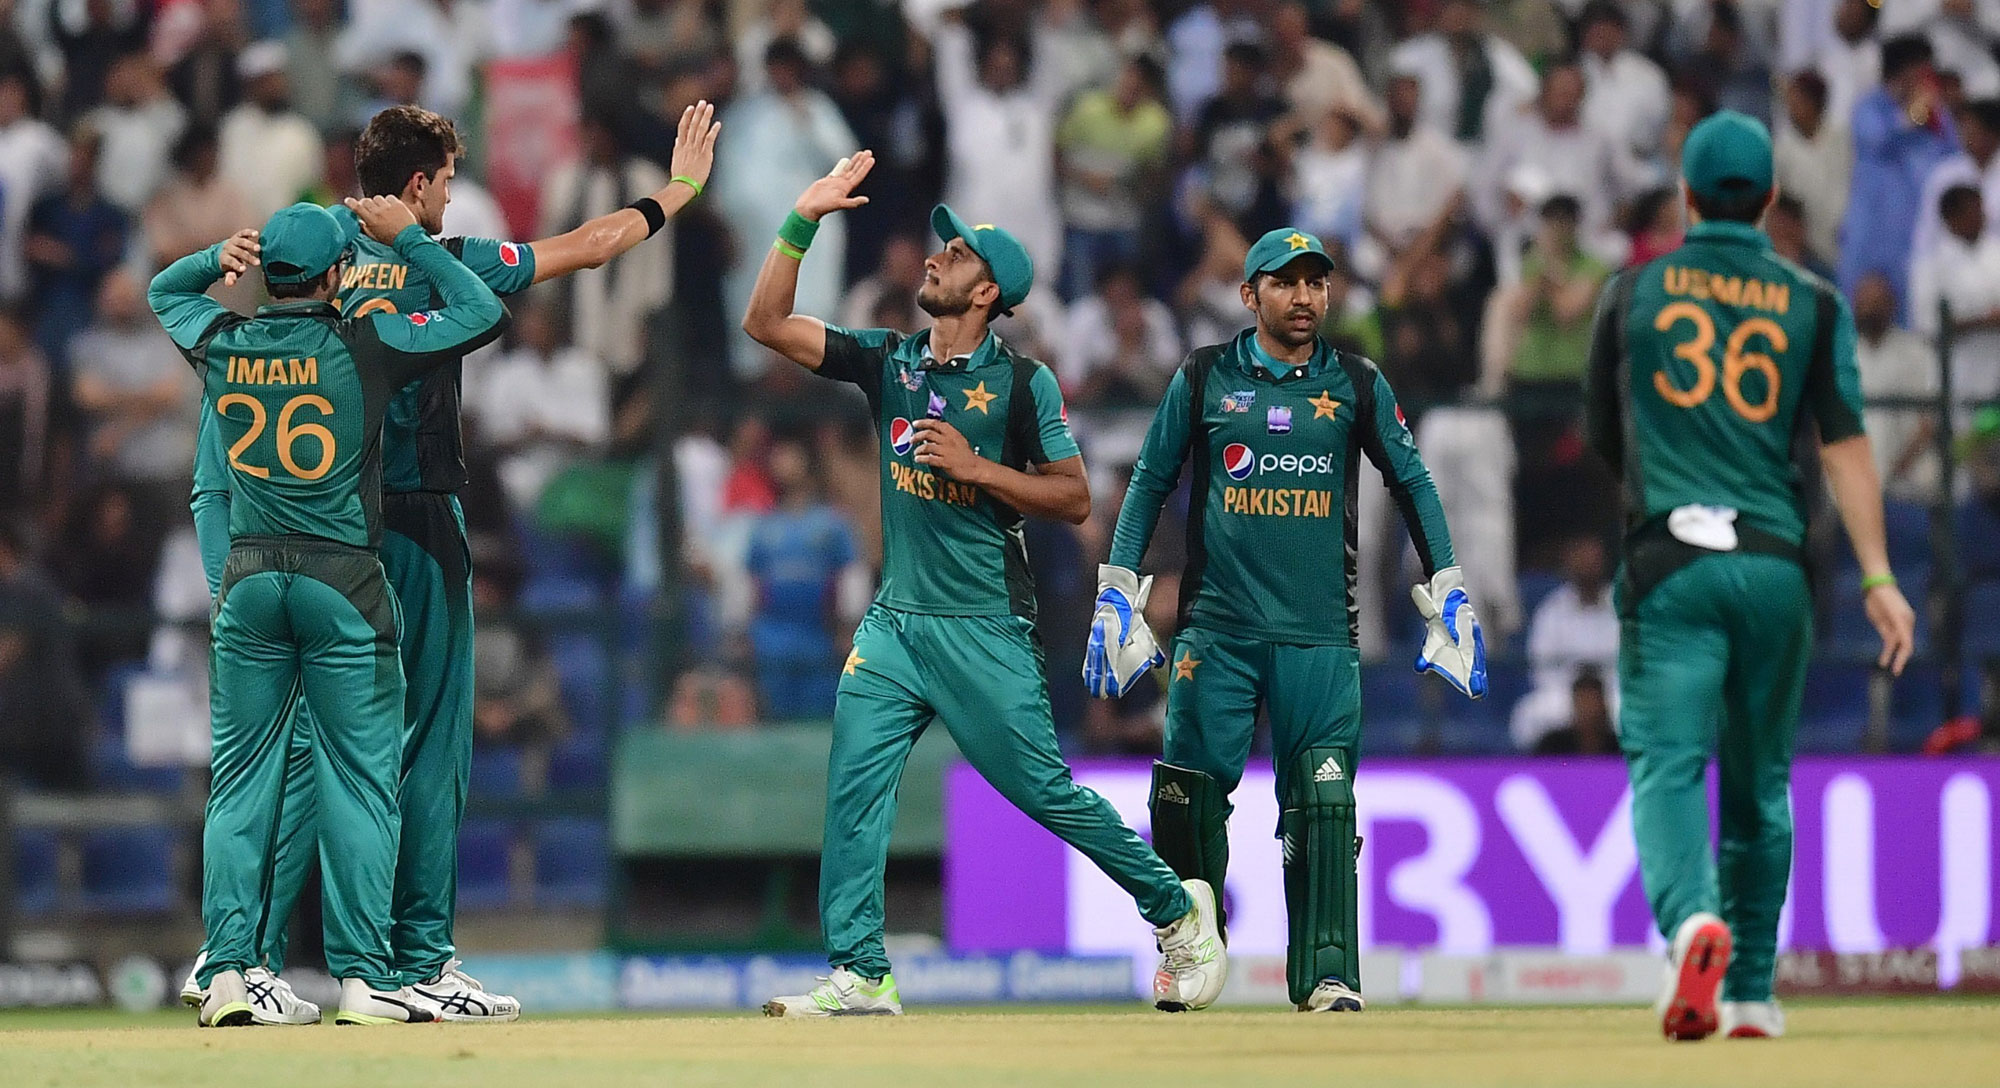 pcb under pressure to release players for t10 league report